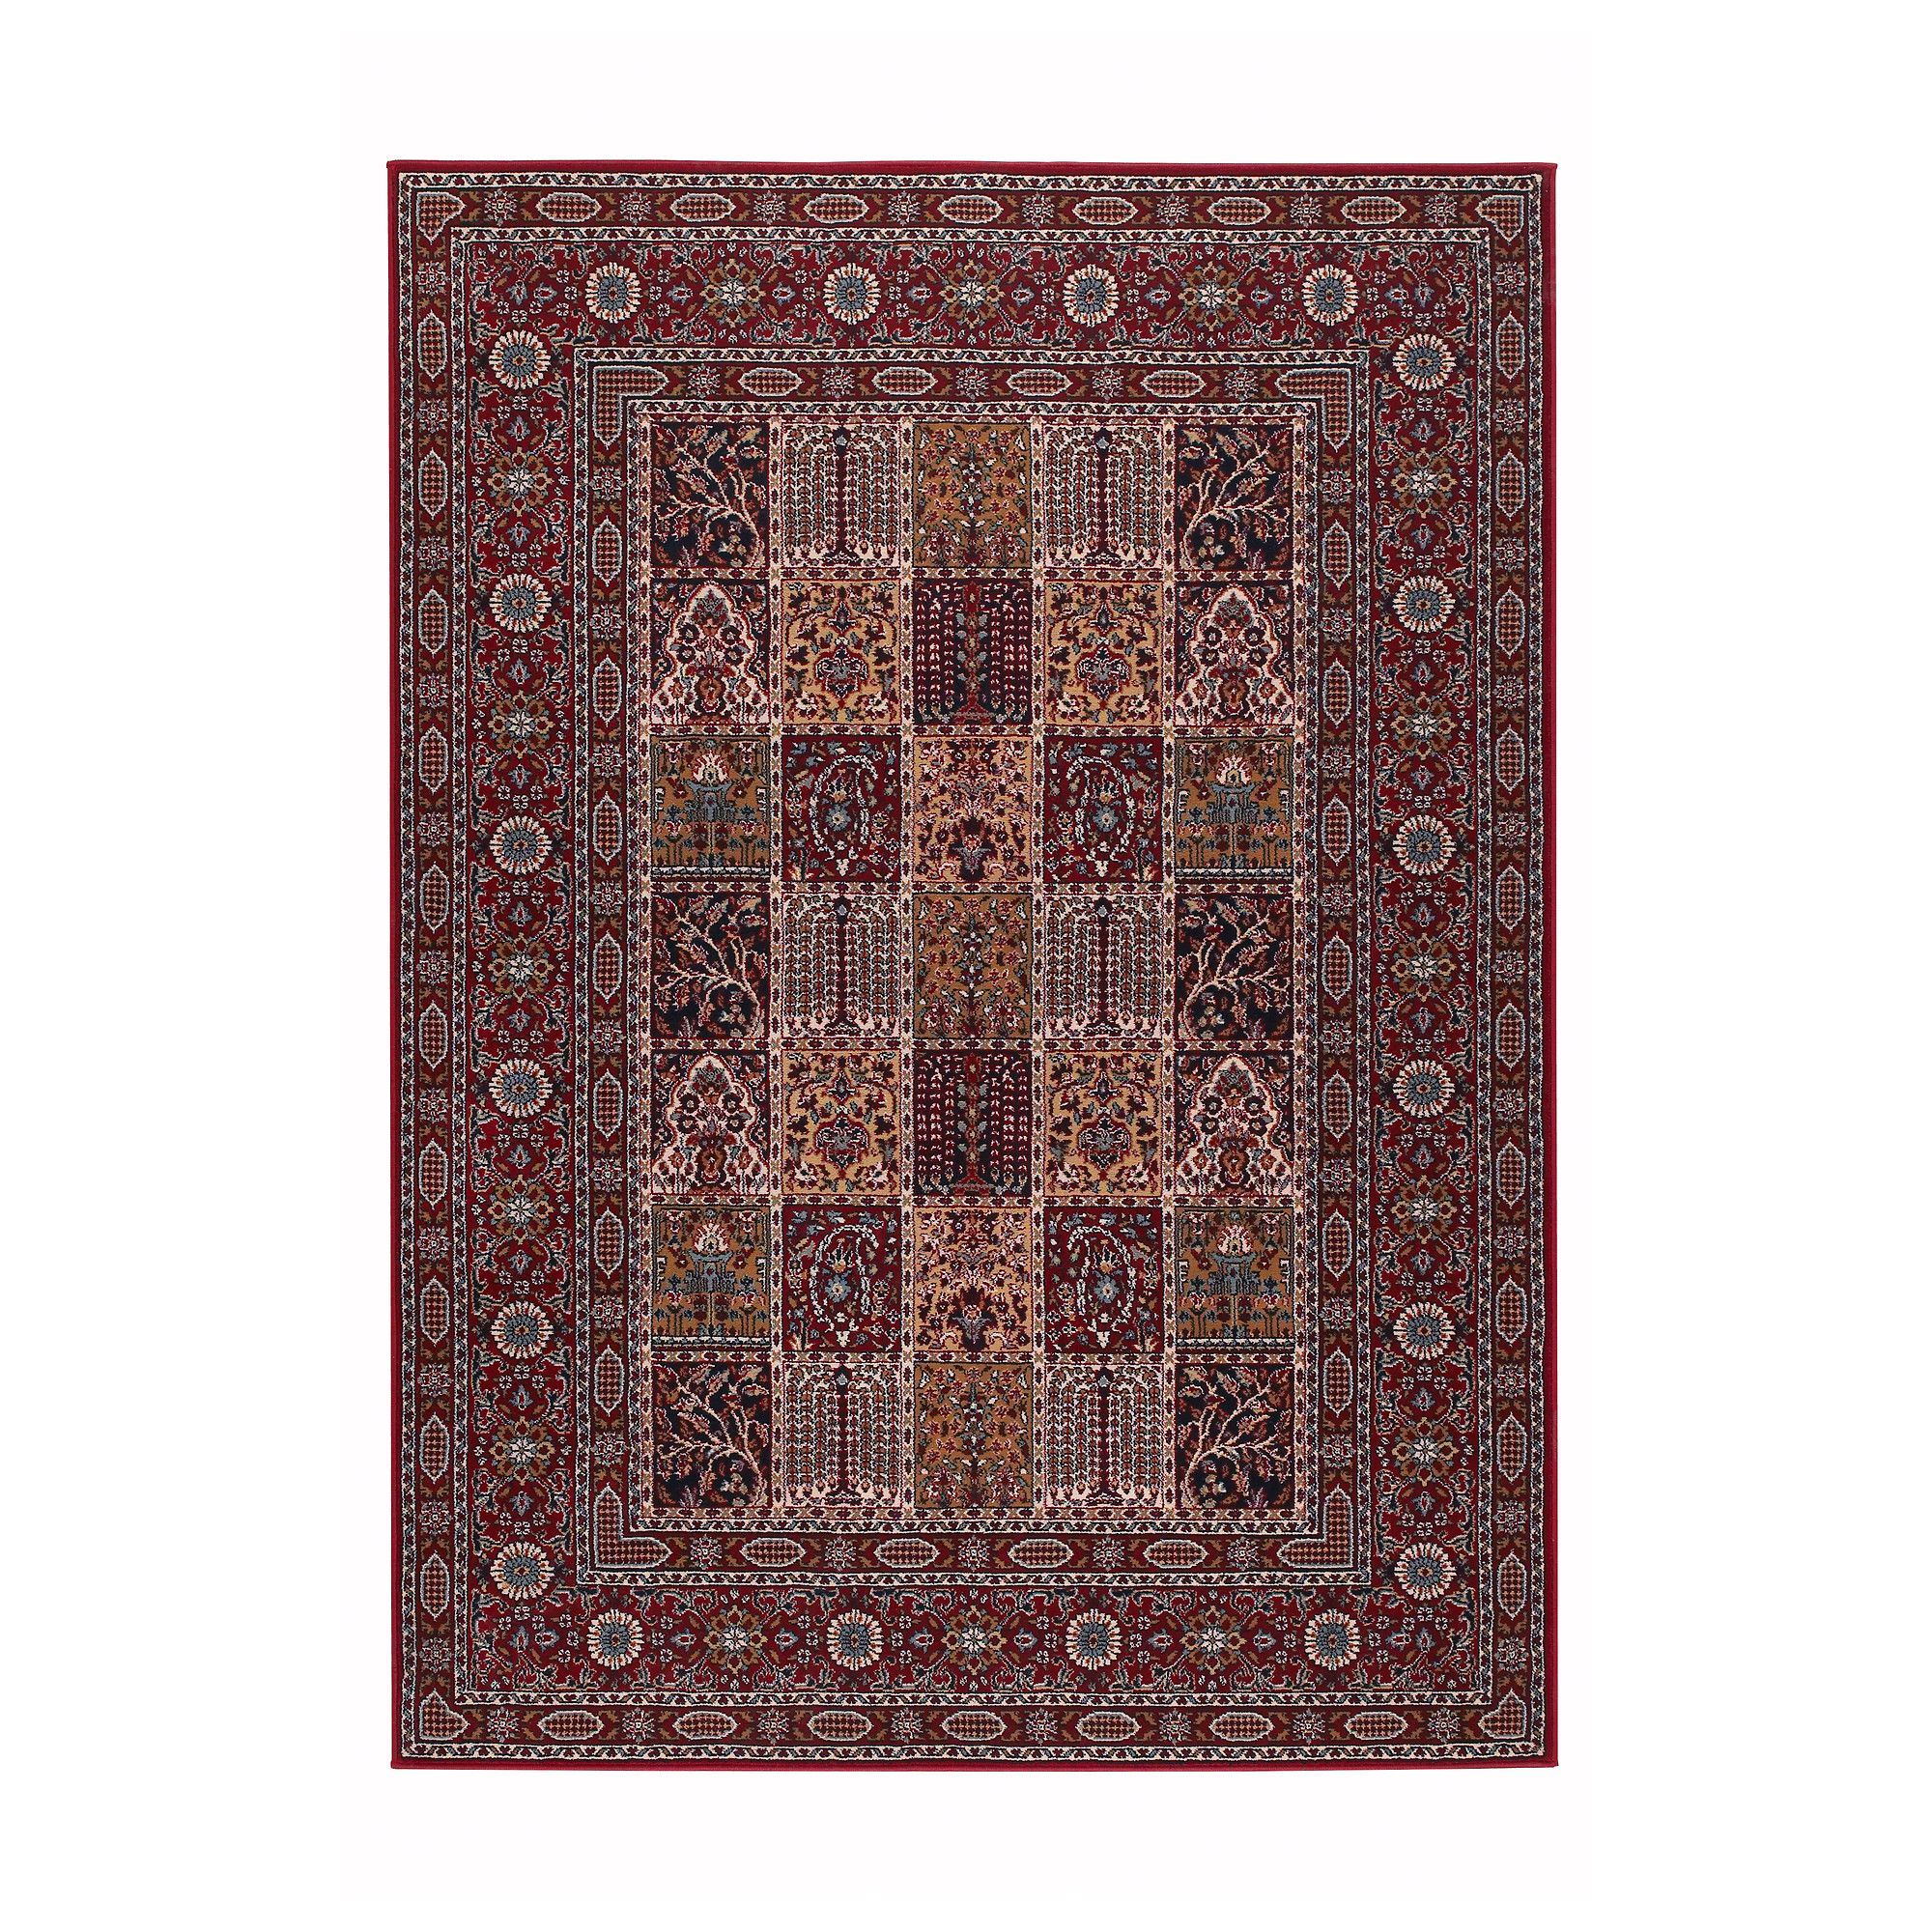 valby ruta rug, low pile - 170x230 cm - ikea | for home